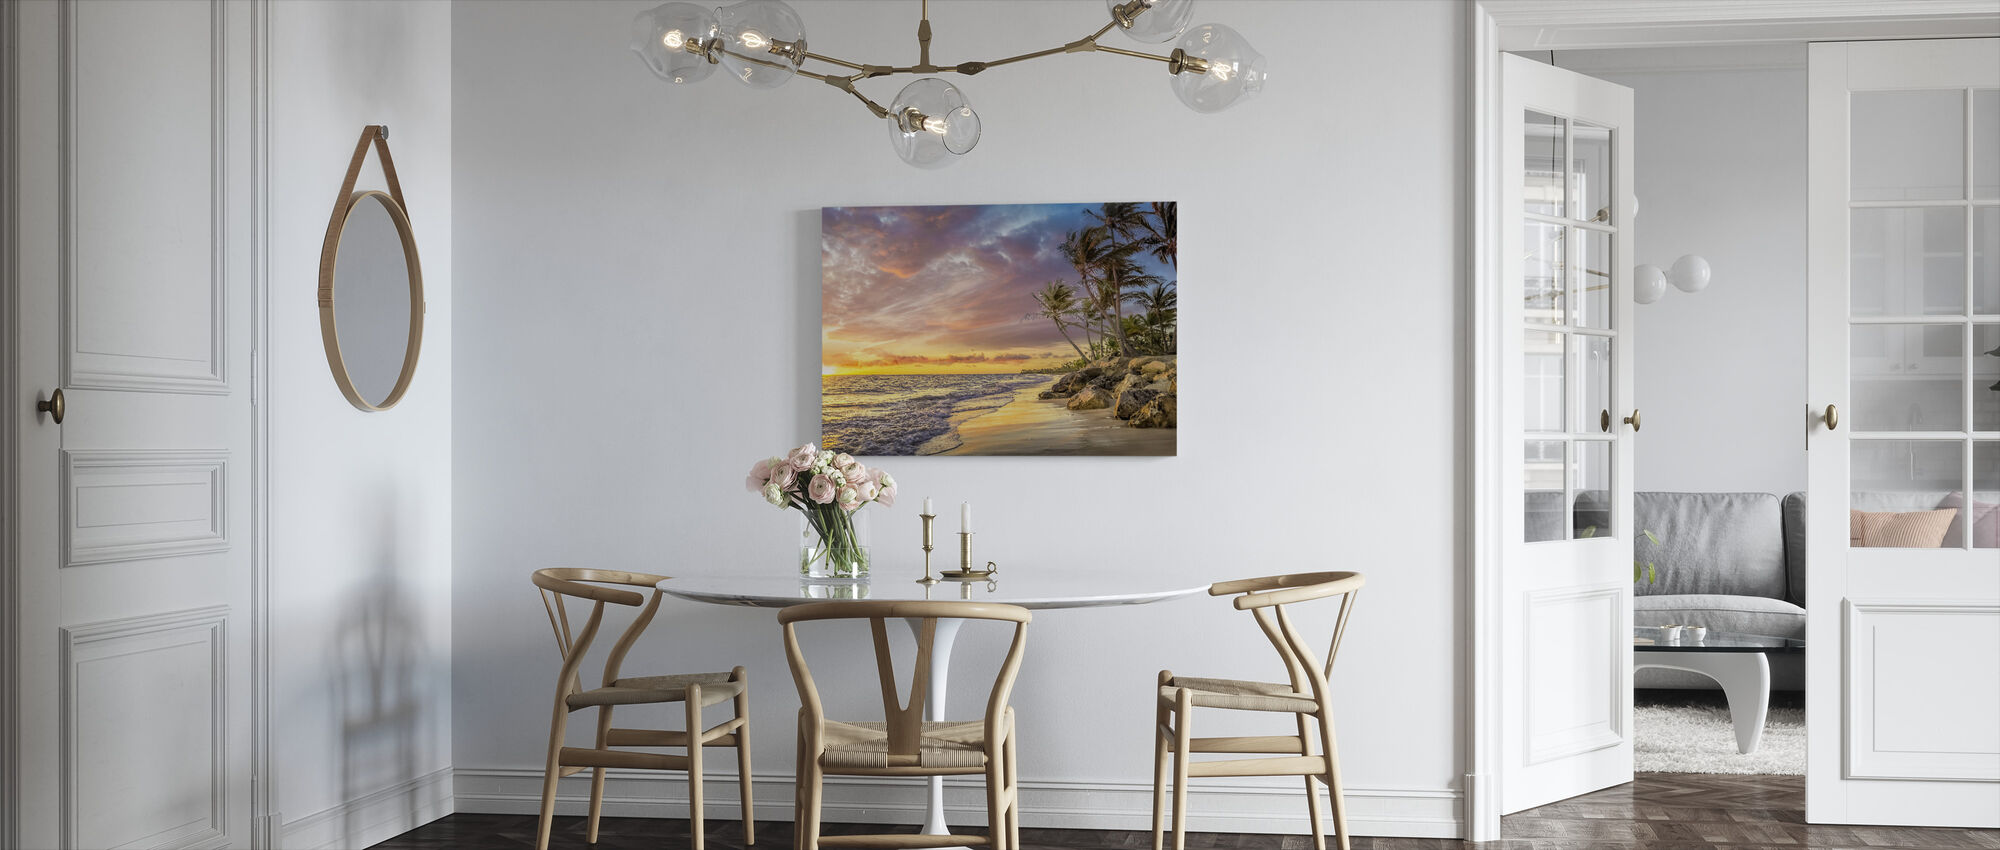 Palm Tree in Sunset - Canvas print - Kitchen